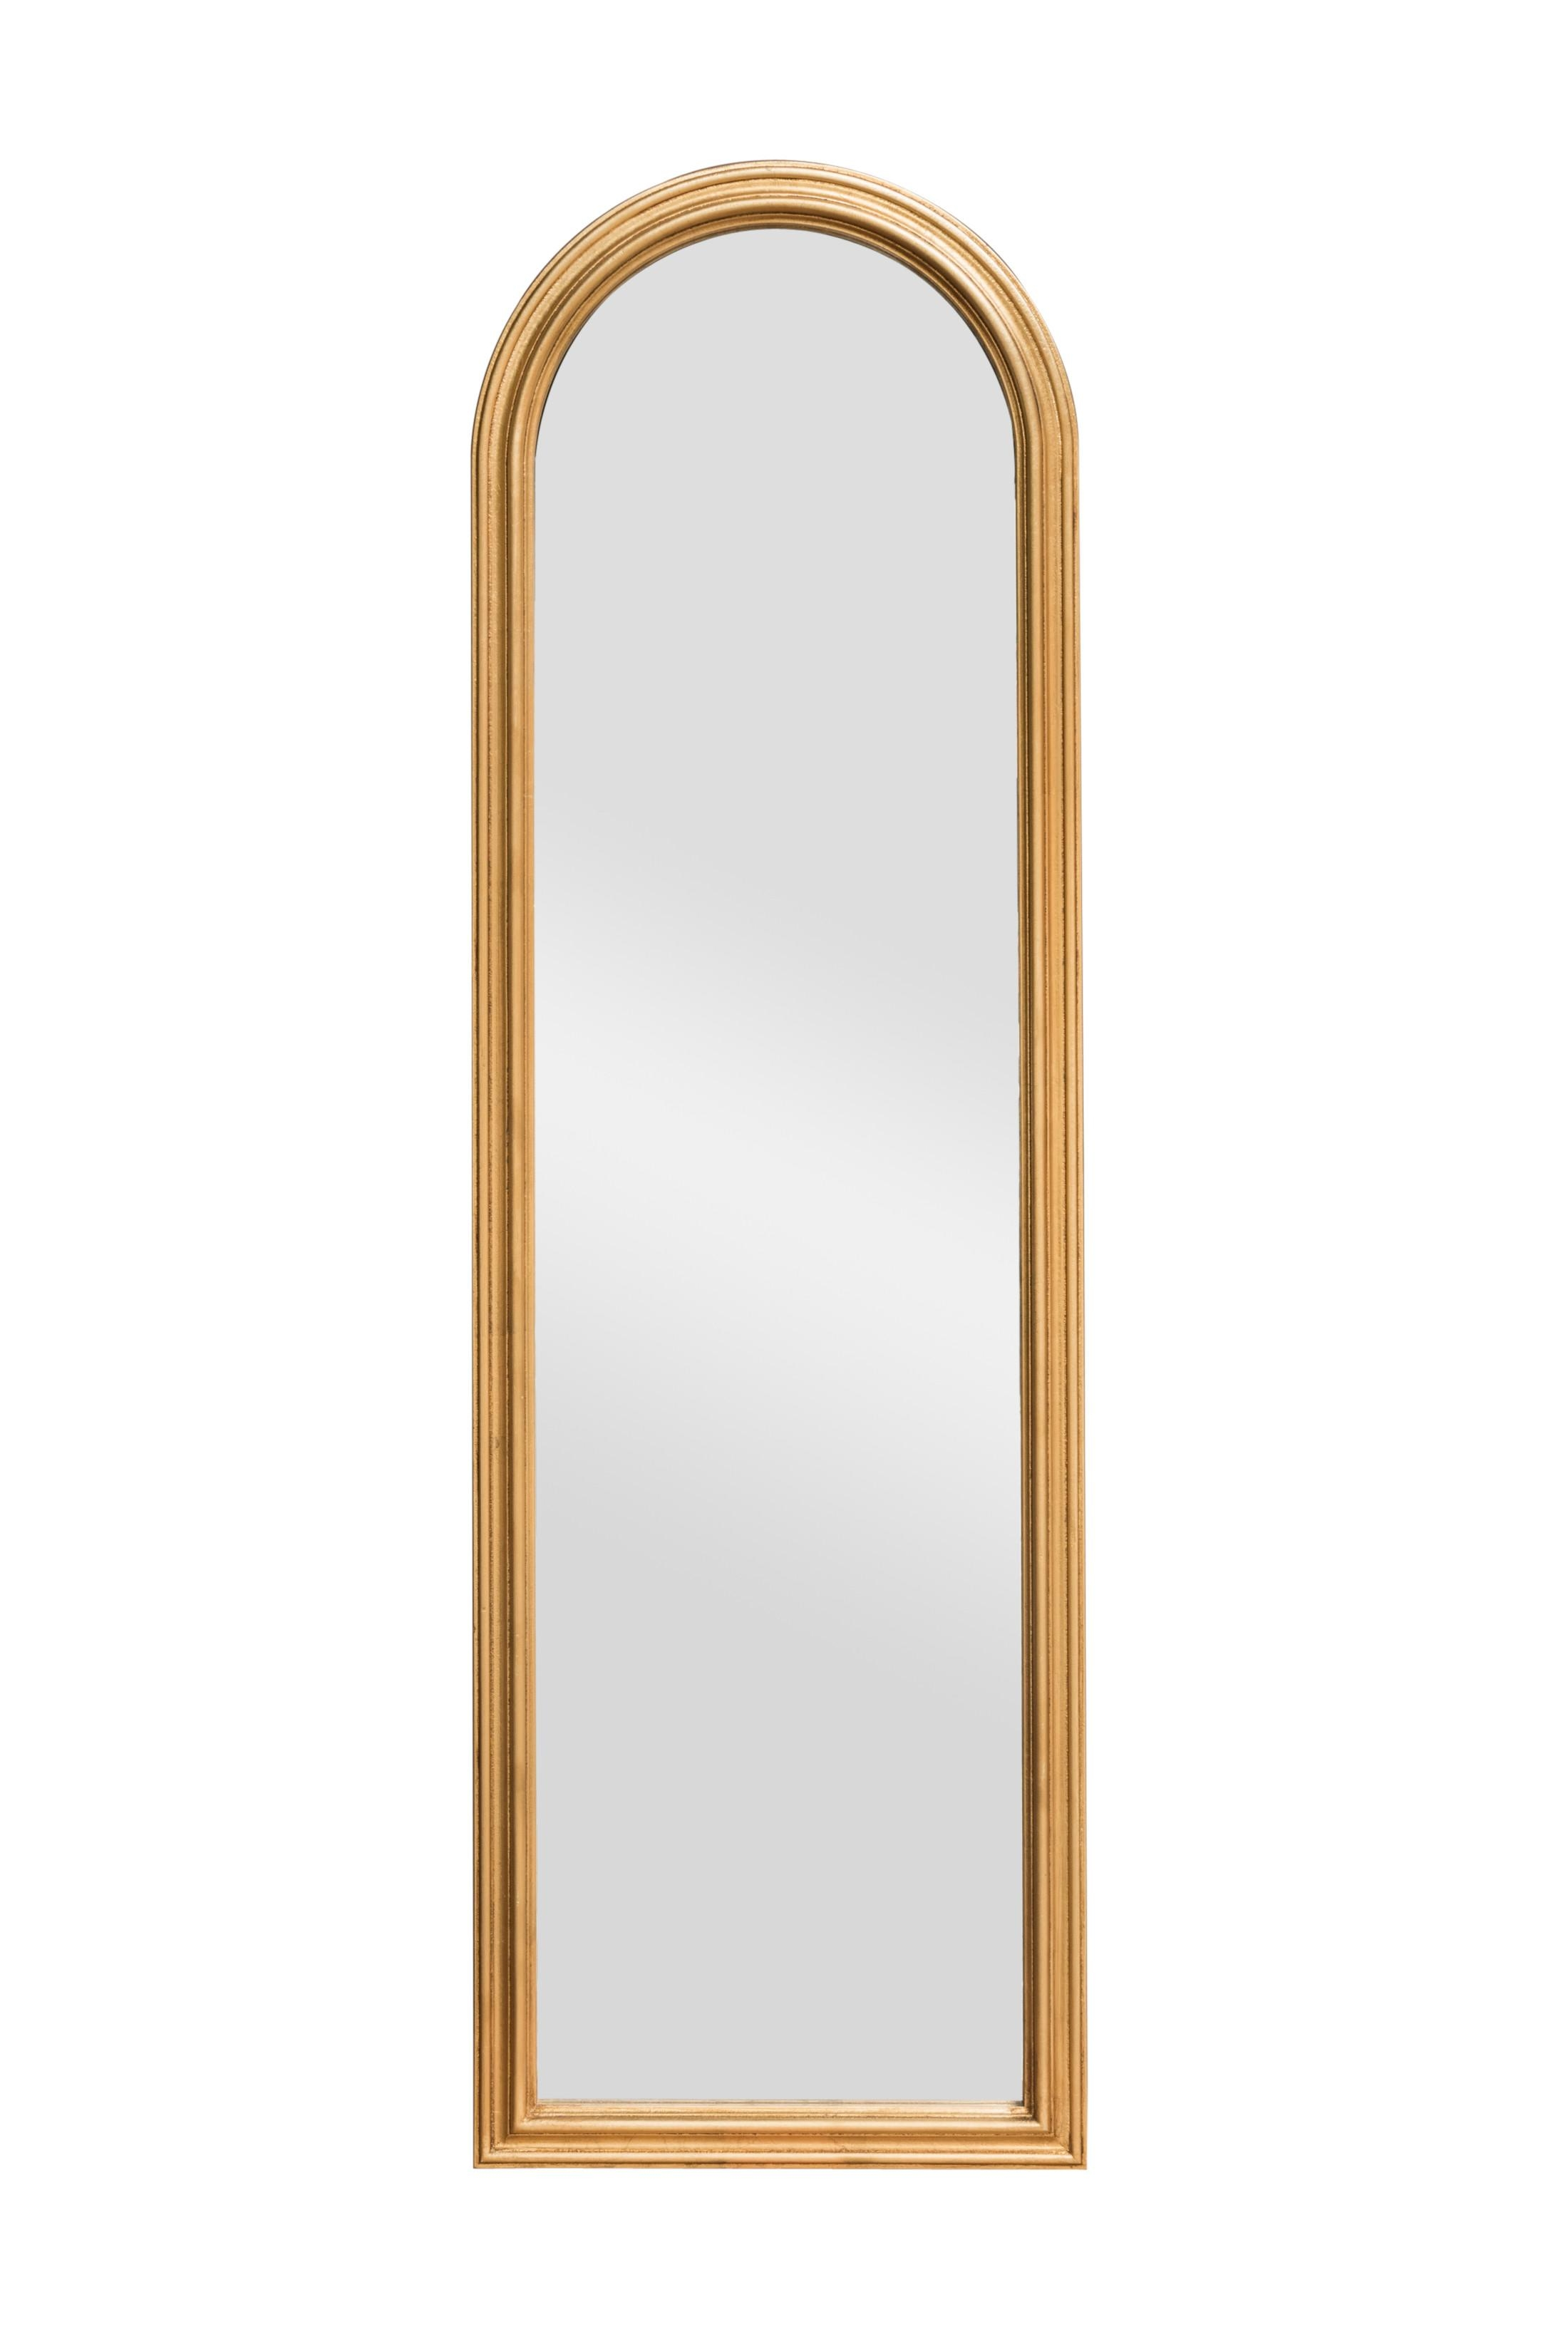 Buy Petite Mirror Gold Leaf At Discounted Price – Panfili Mirrors Throughout Gold Arch Mirror (Image 2 of 20)